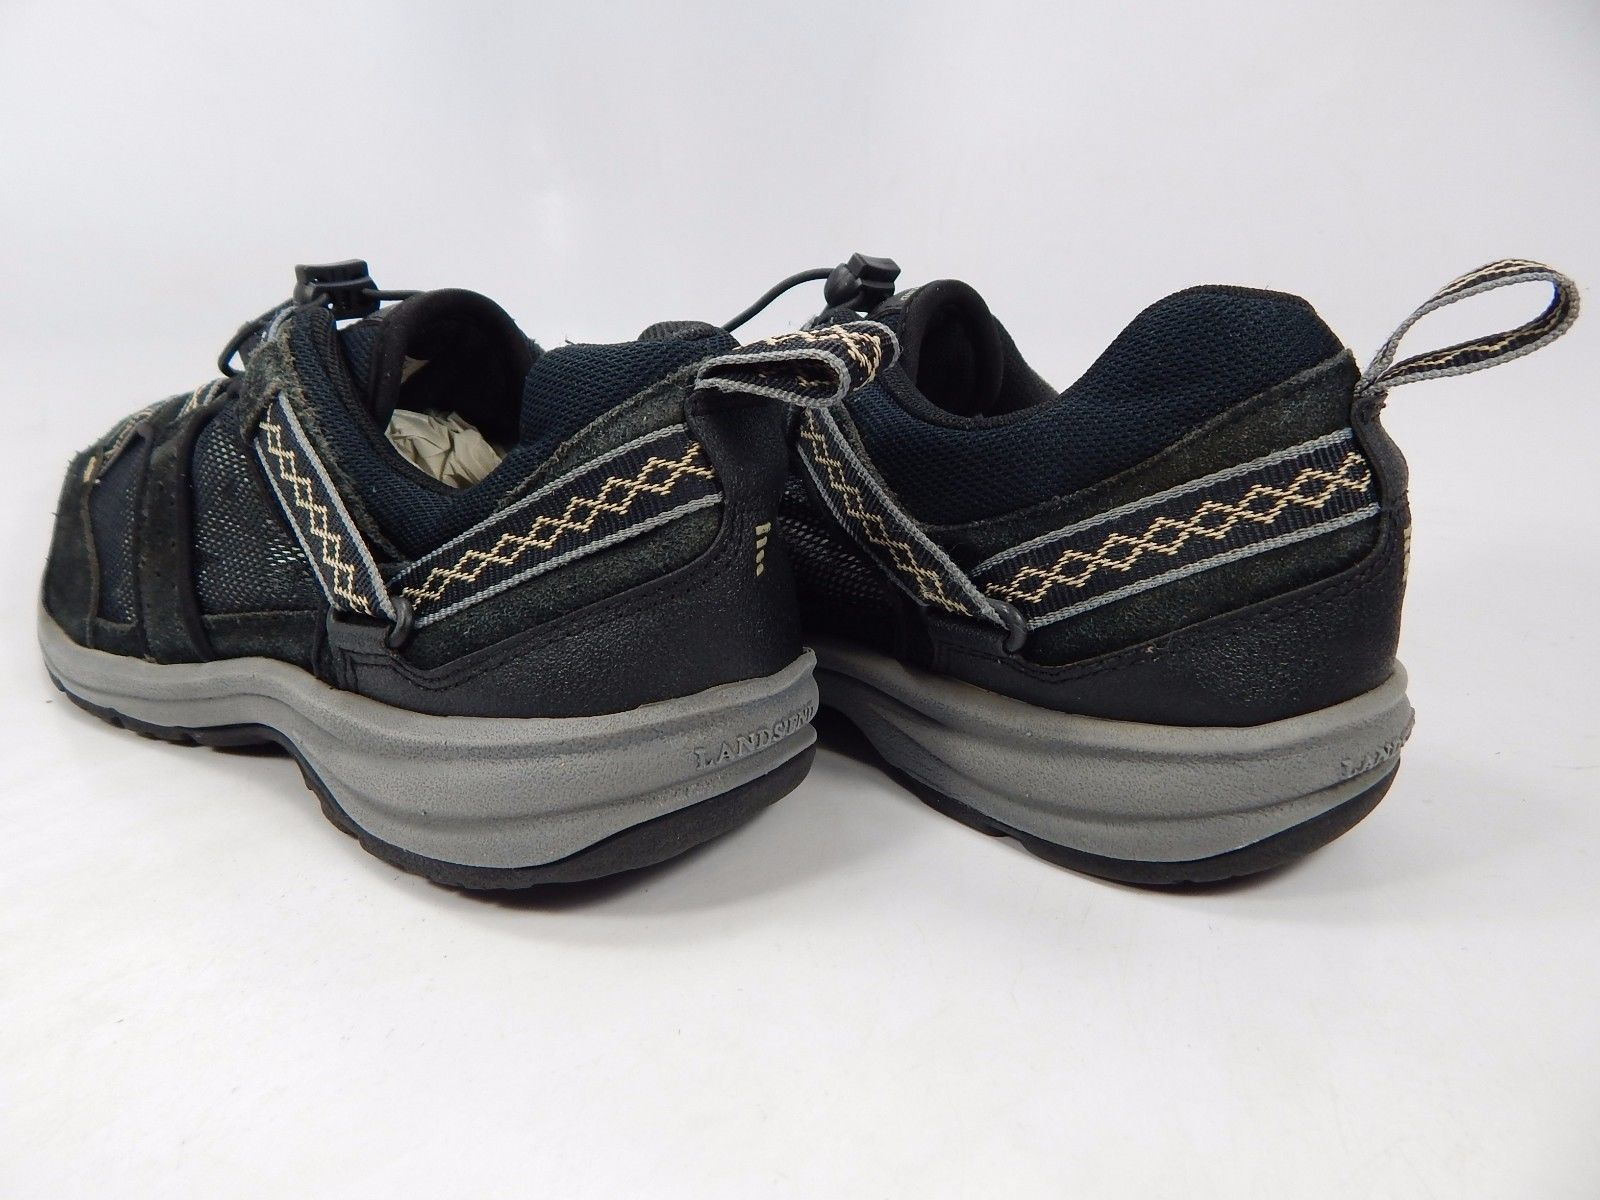 Land's End Men's Trail Hiking Athletic Shoes Size US 9.5 M (D) EU 42.5 Black